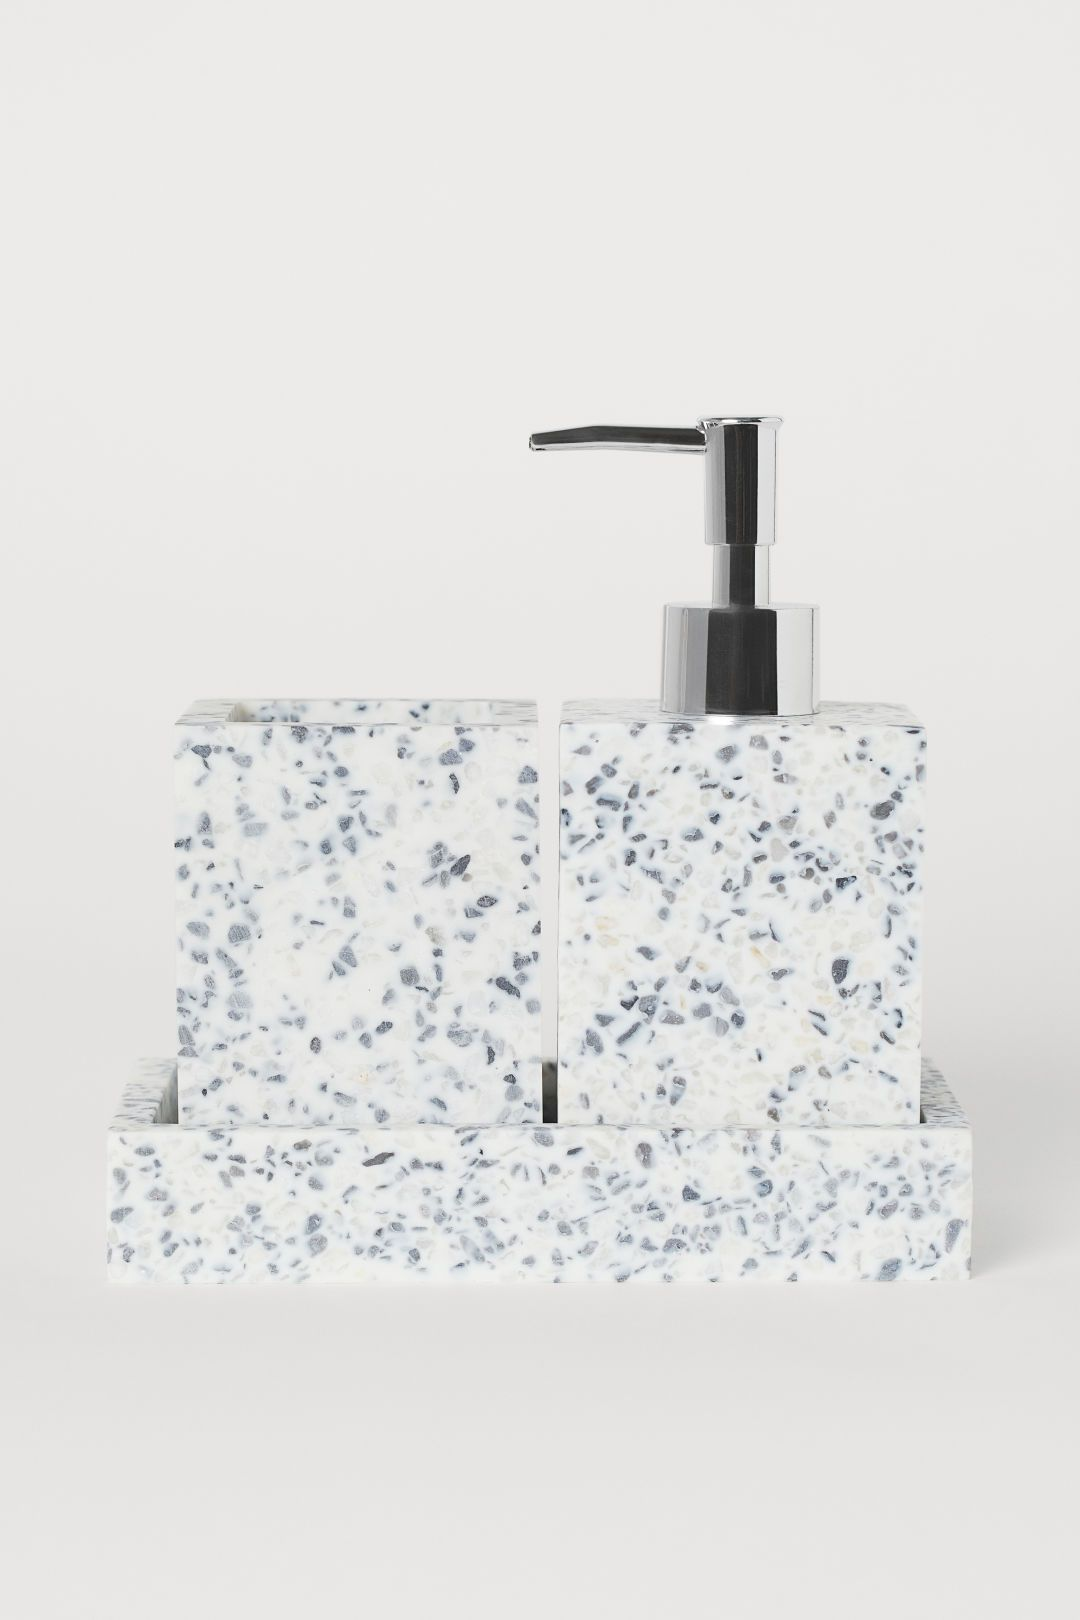 This Designer Home Pattern Is The New Polka Dot Soap Dispenser Bathroom Design Small Small Bathroom Design